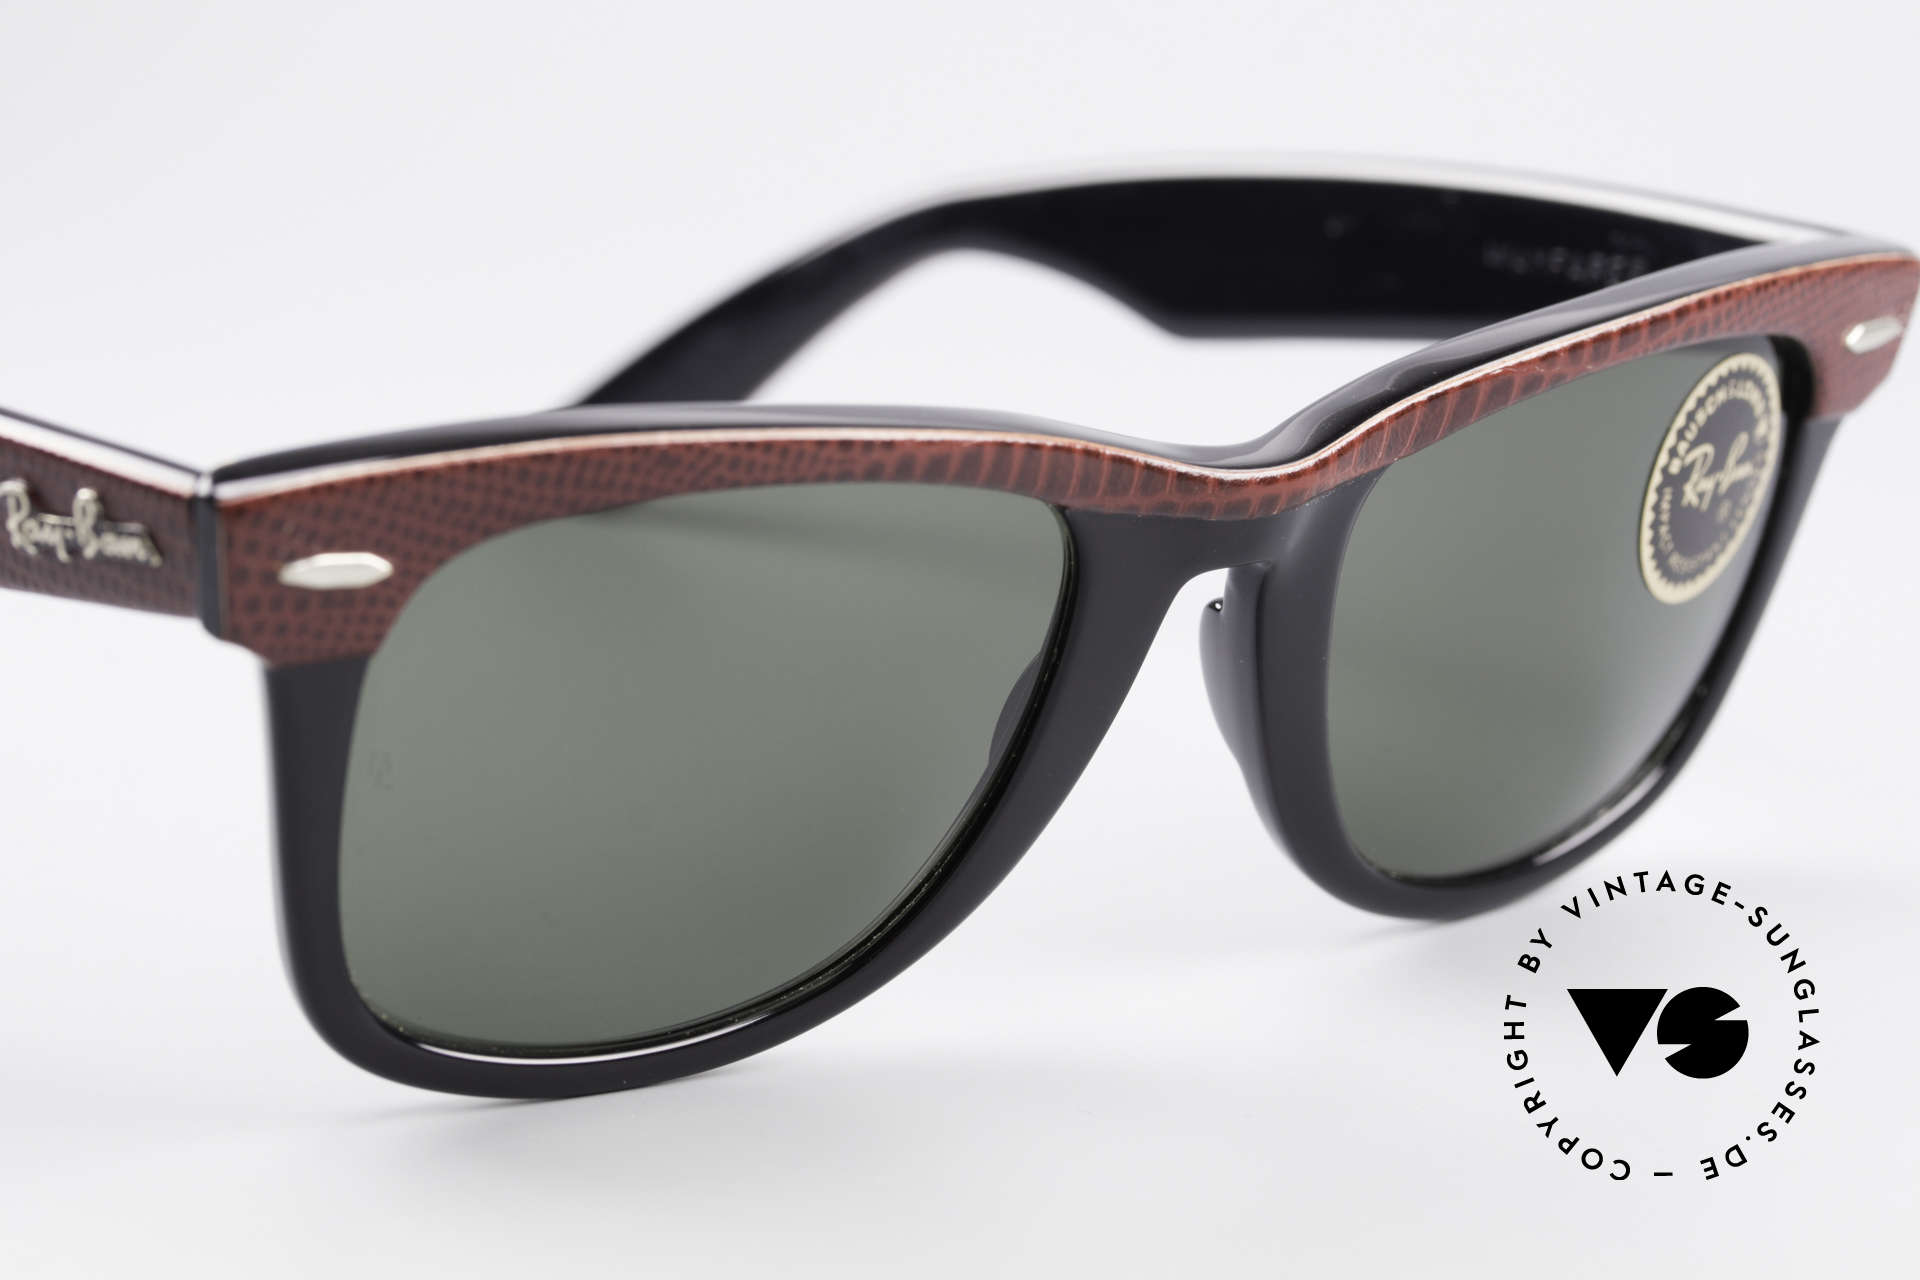 Ray Ban Wayfarer I Limited Leather Sunglasses, Size: medium, Made for Men and Women